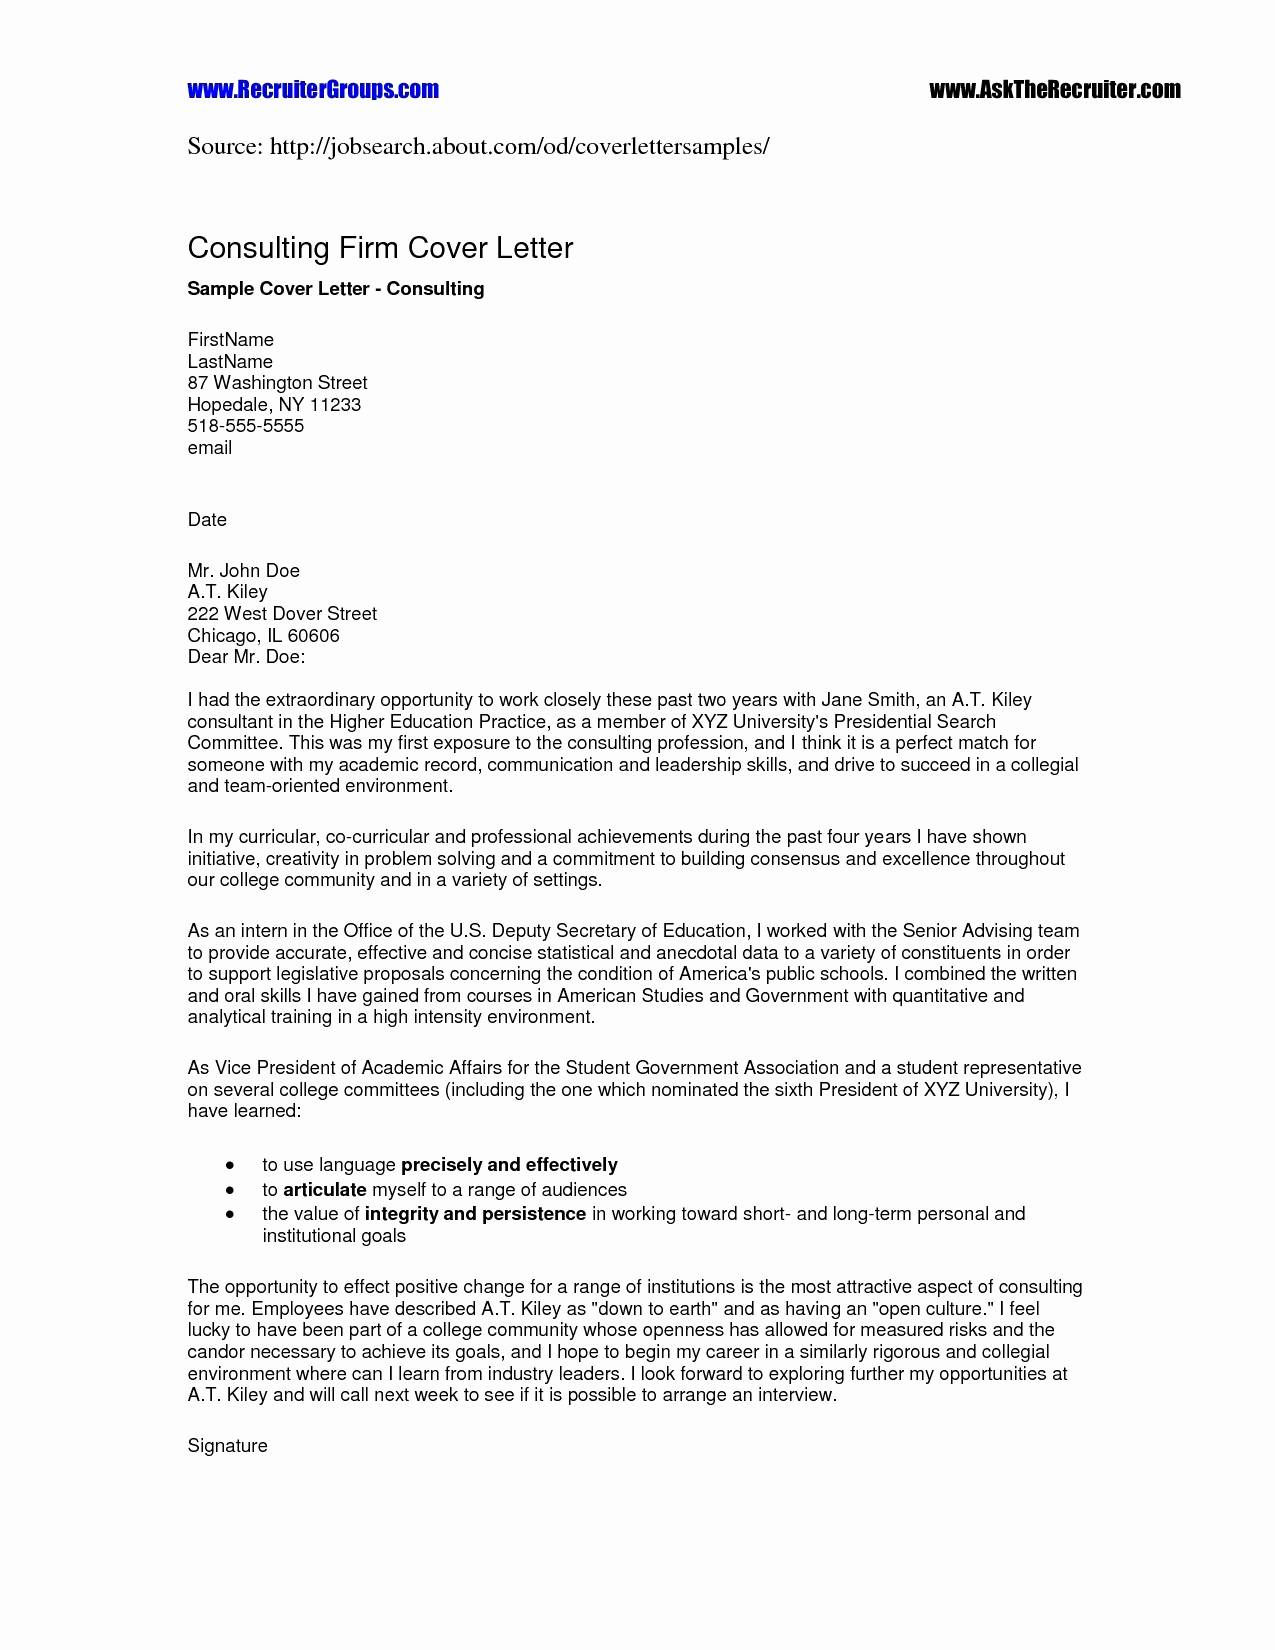 Cease and Desist Creditor Letter Template - Cease and Desist Letter Template for Debt Collectors Fresh 20 Debt